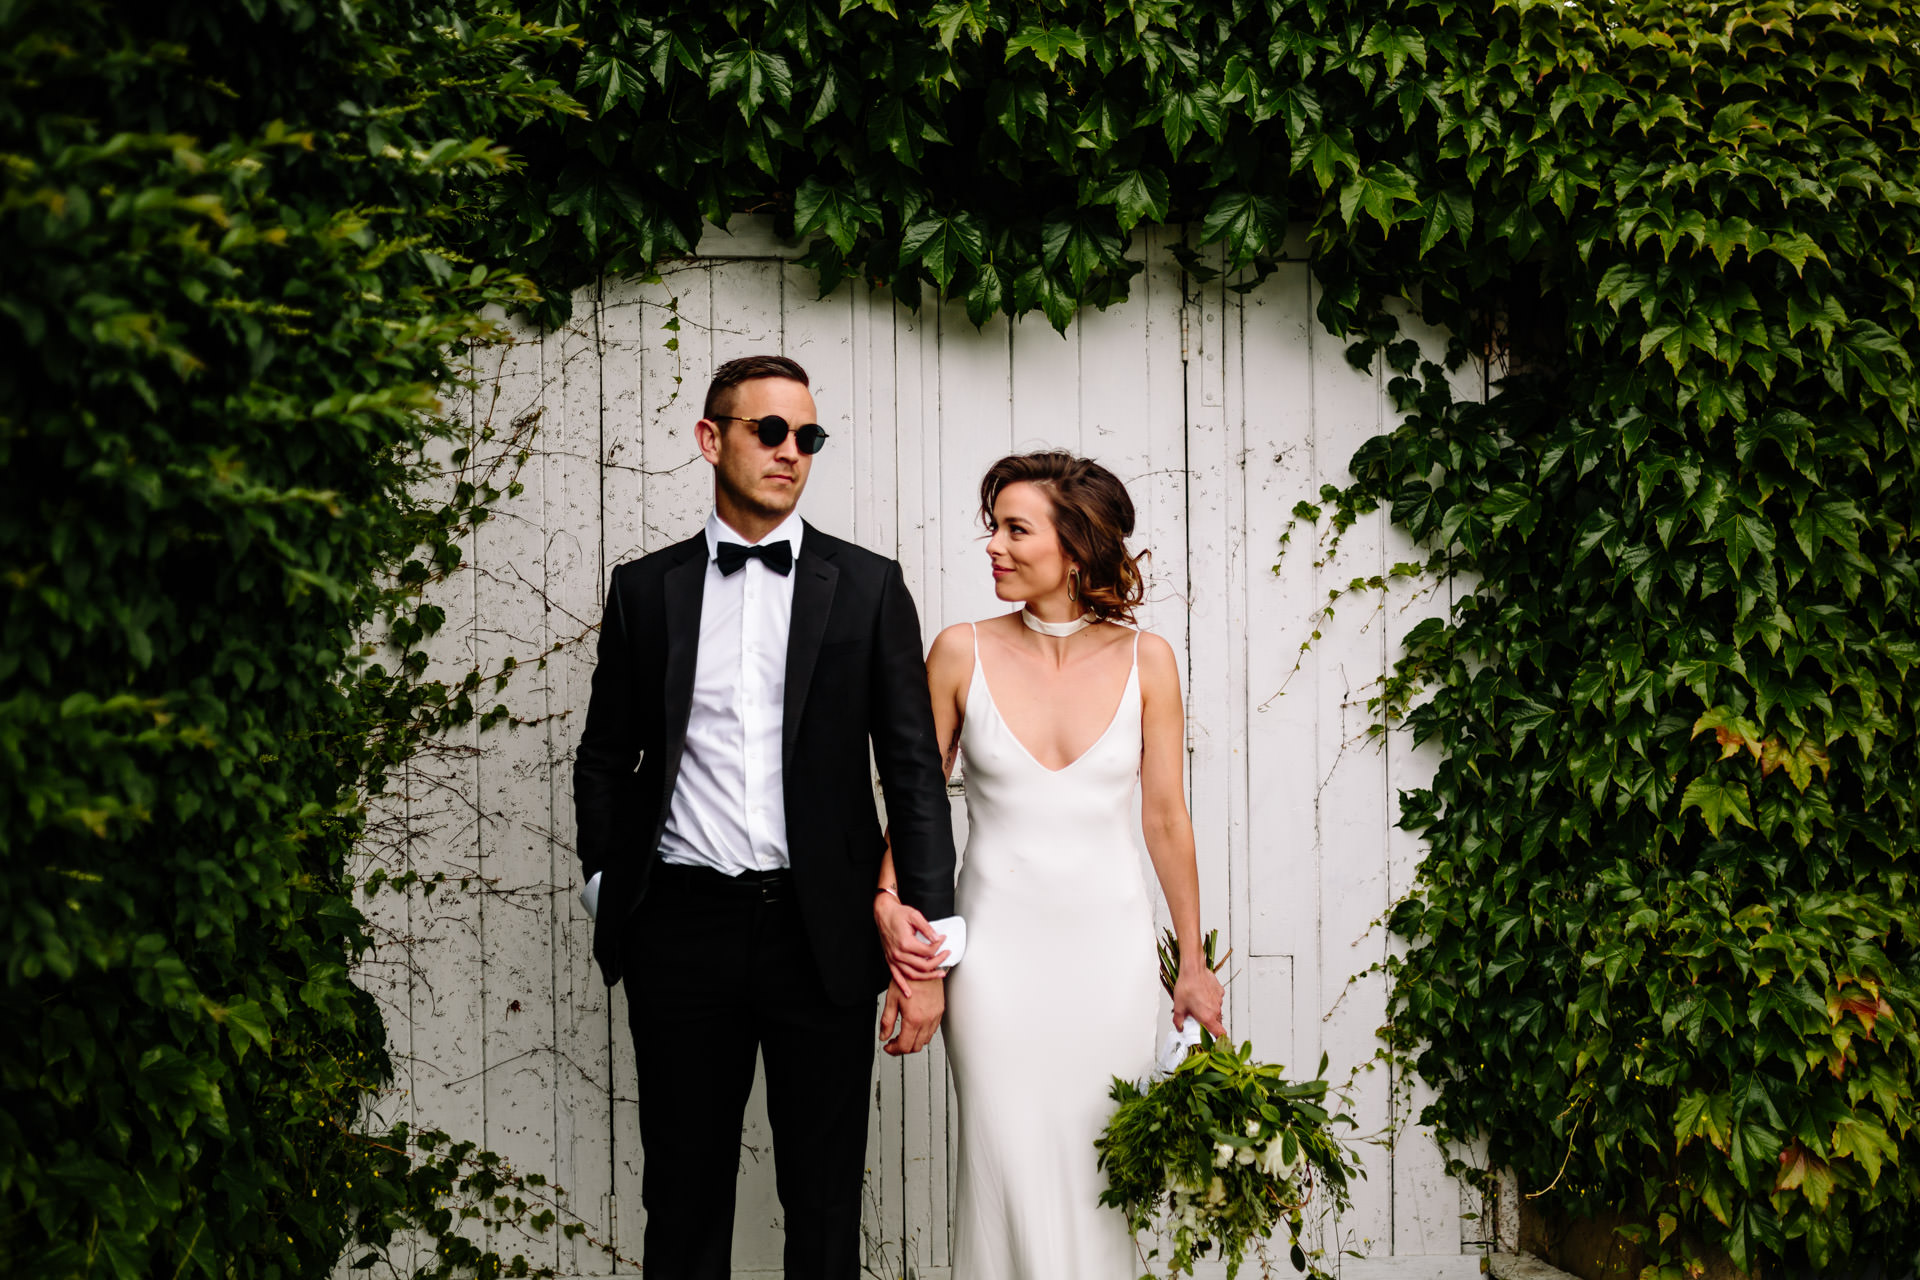 2_top_4175_the_official_photographers_wedding_styled_newzealand